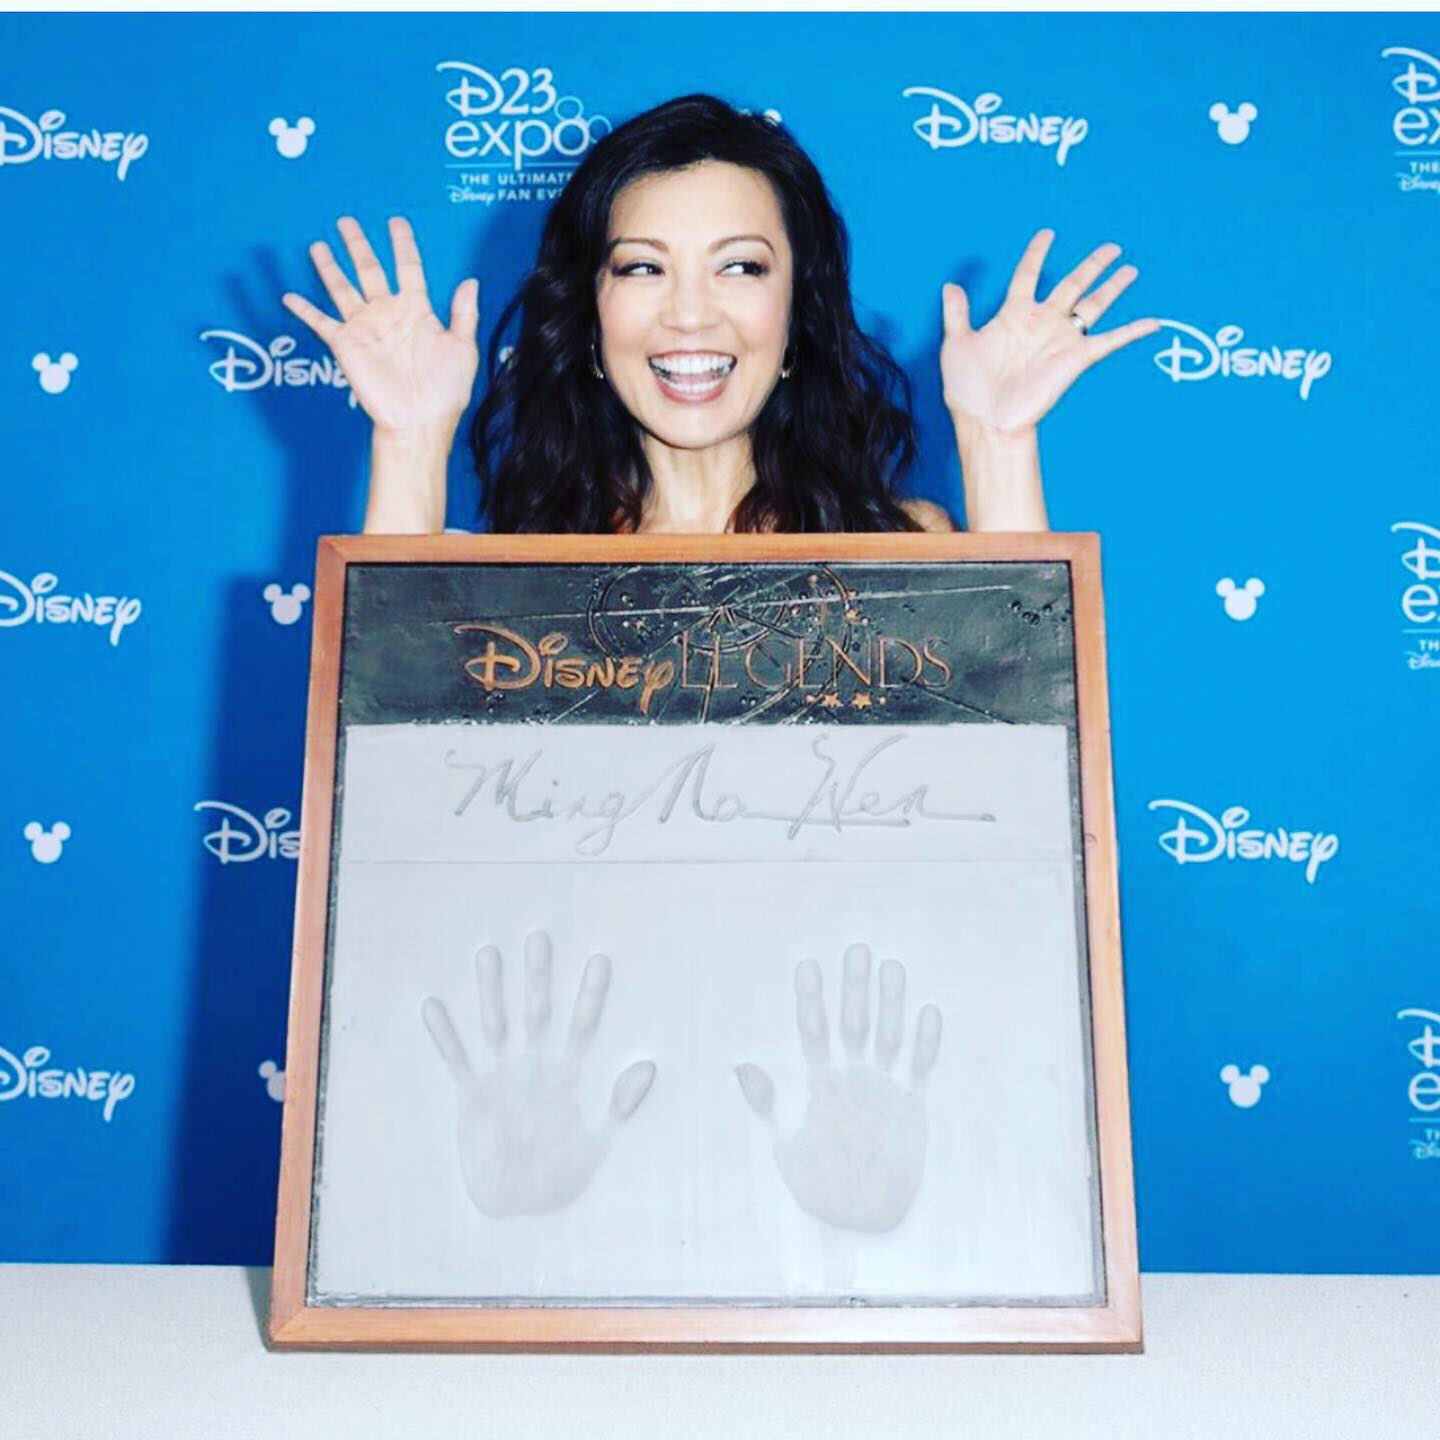 Congratulations to our very own Disney LEGEND, @MingNa! #AgentsofSHIELD https://t.co/d2X5mKtIbR